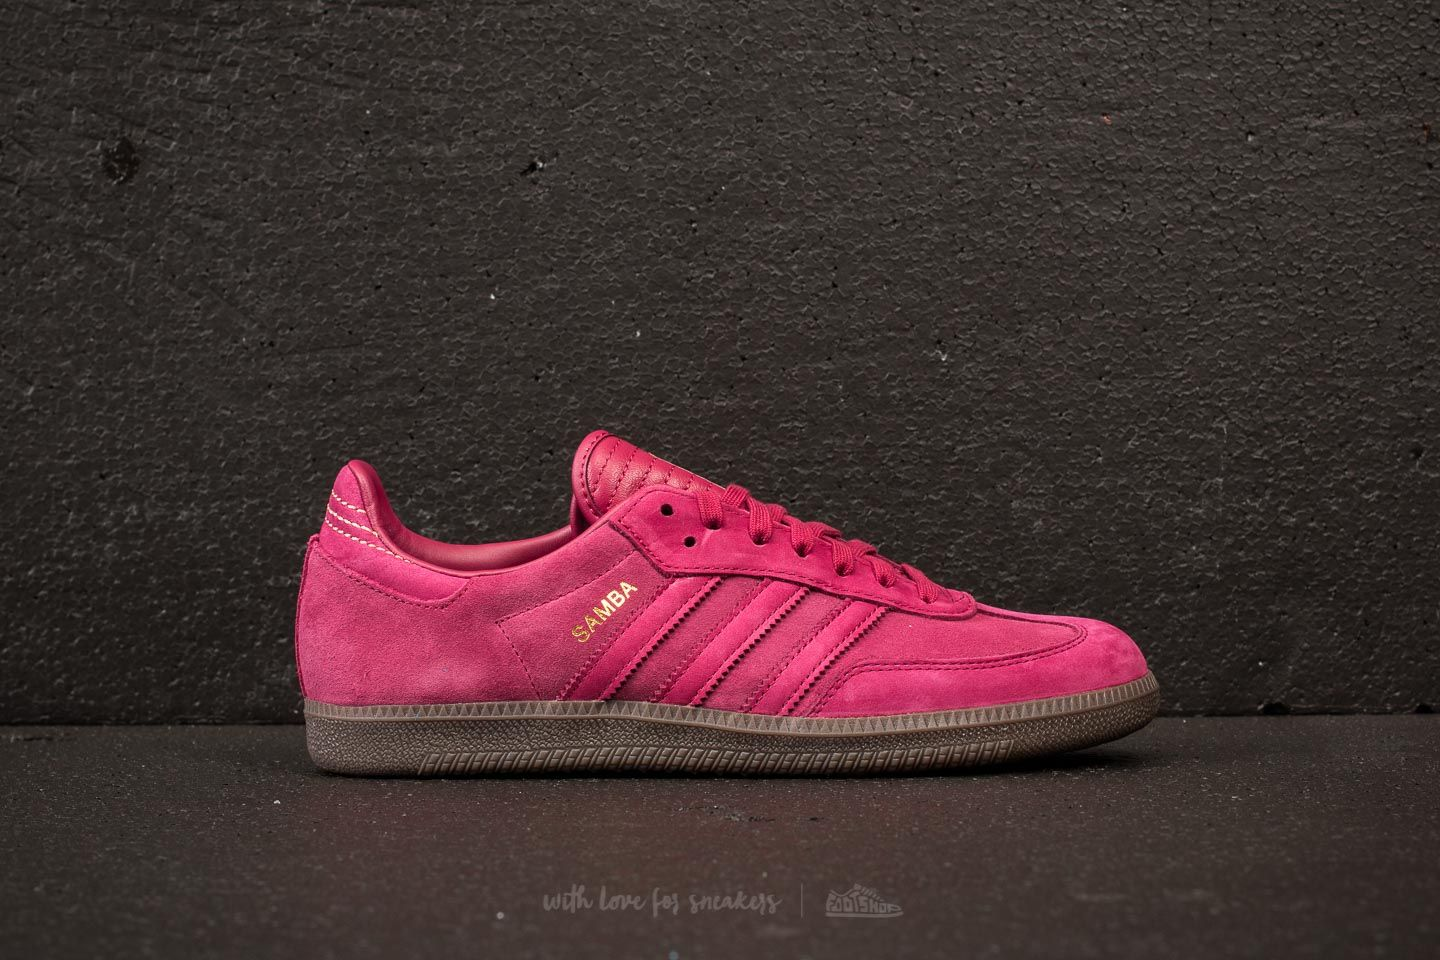 buffet Fácil de comprender arrastrar  Men's shoes adidas Samba FB Mystery Ruby/ Mystery Ruby/ Gold Metallic